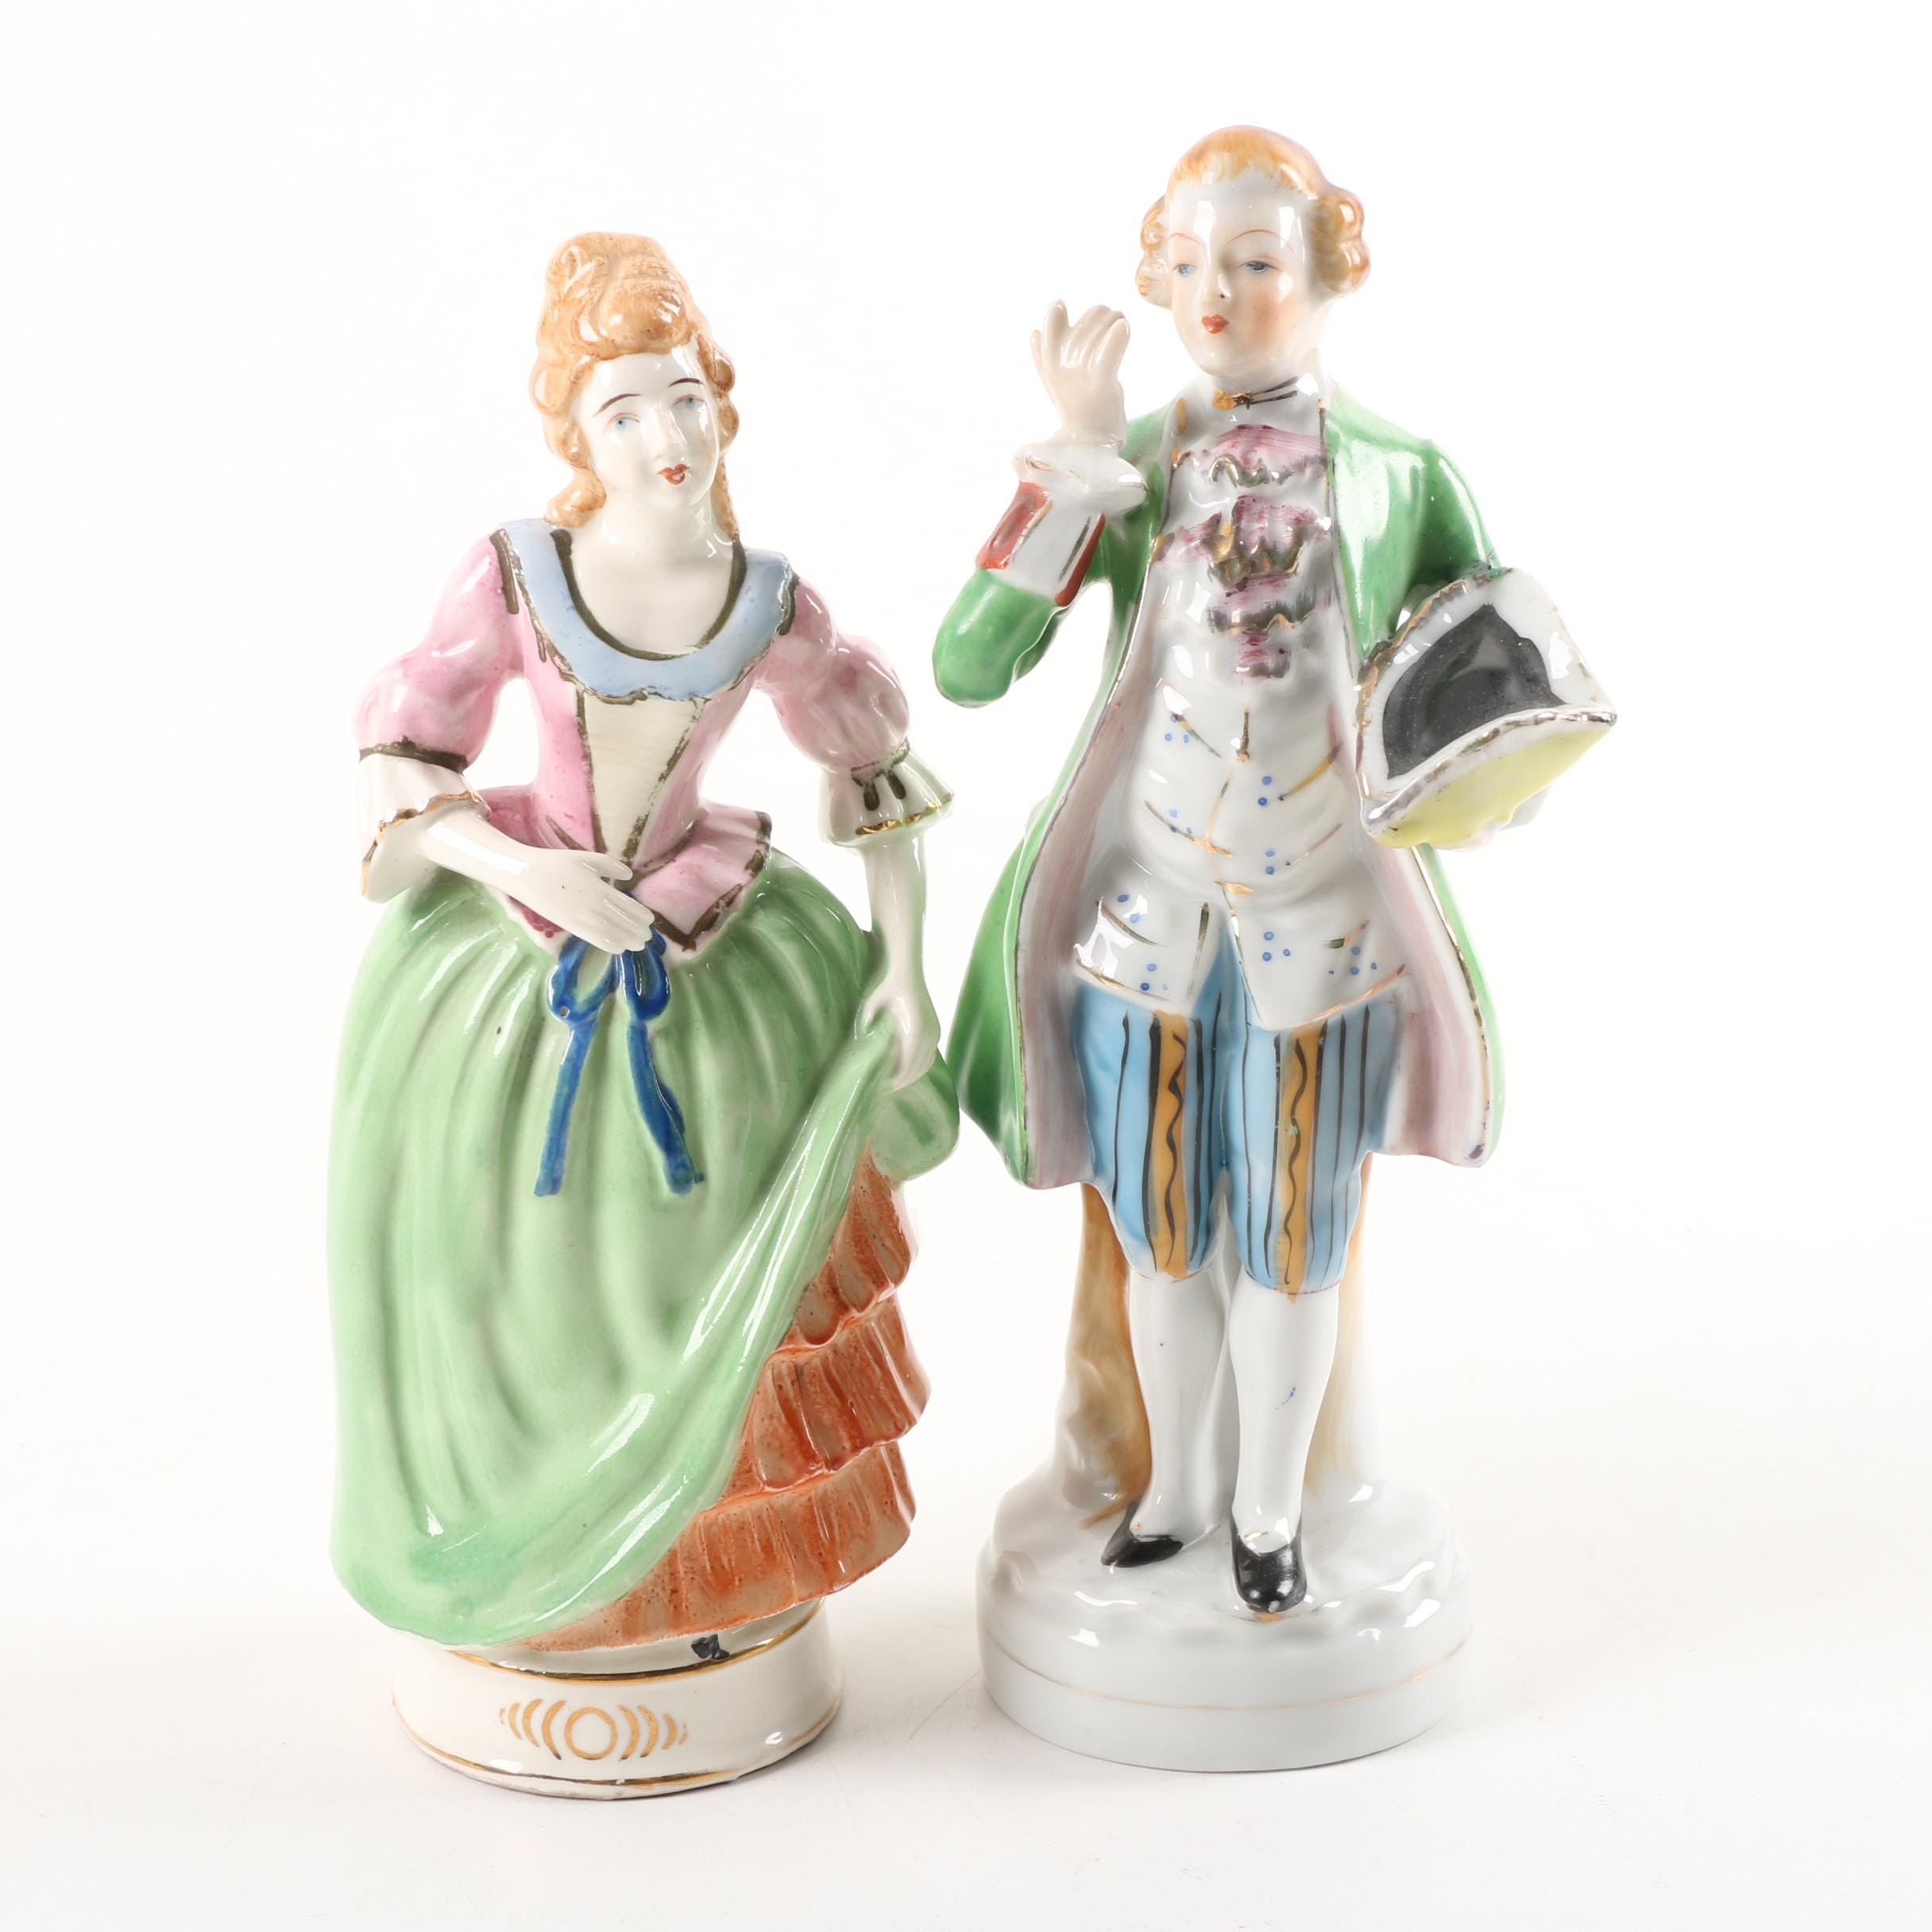 Occupied Japan Figurines of French Court Figures